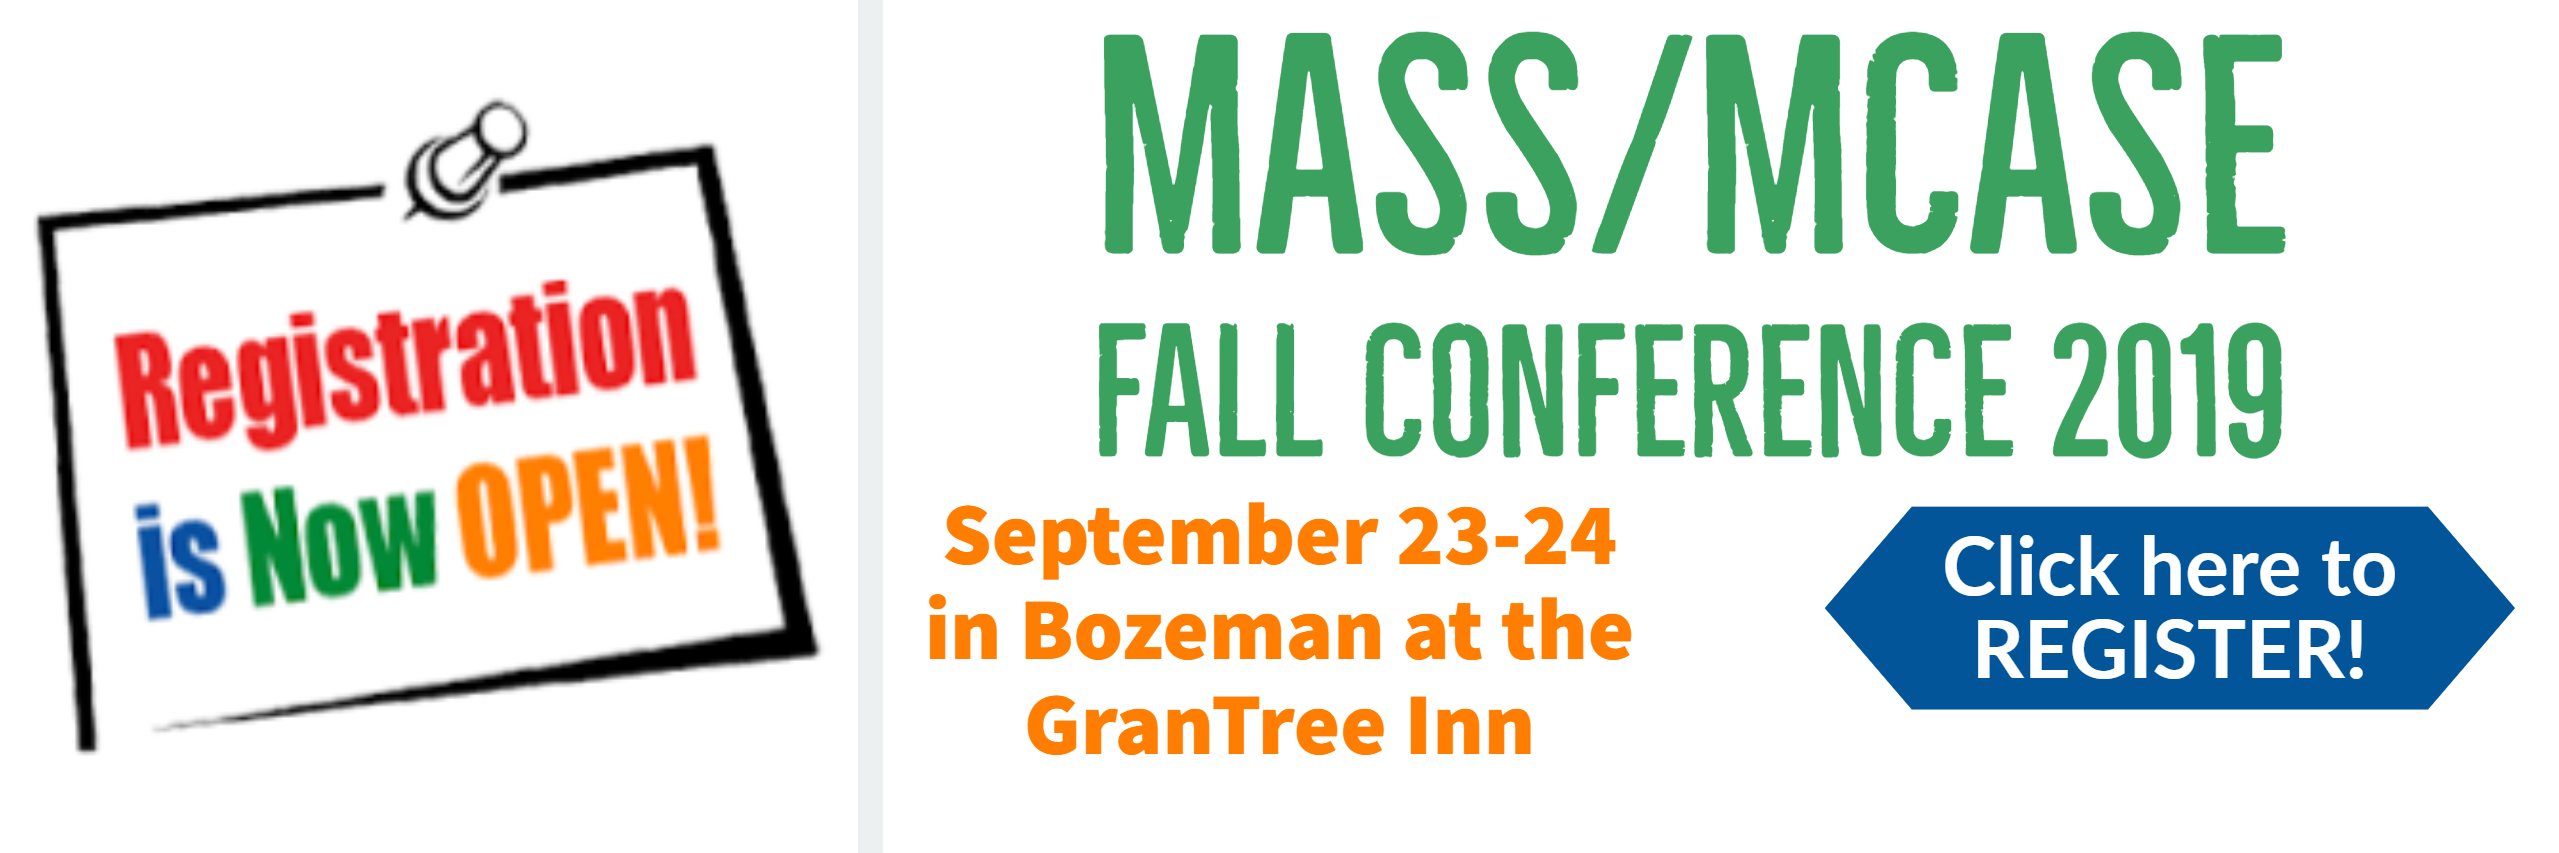 MASS_MCASE-Fall-Conference-2019 .png - 511.79 Kb